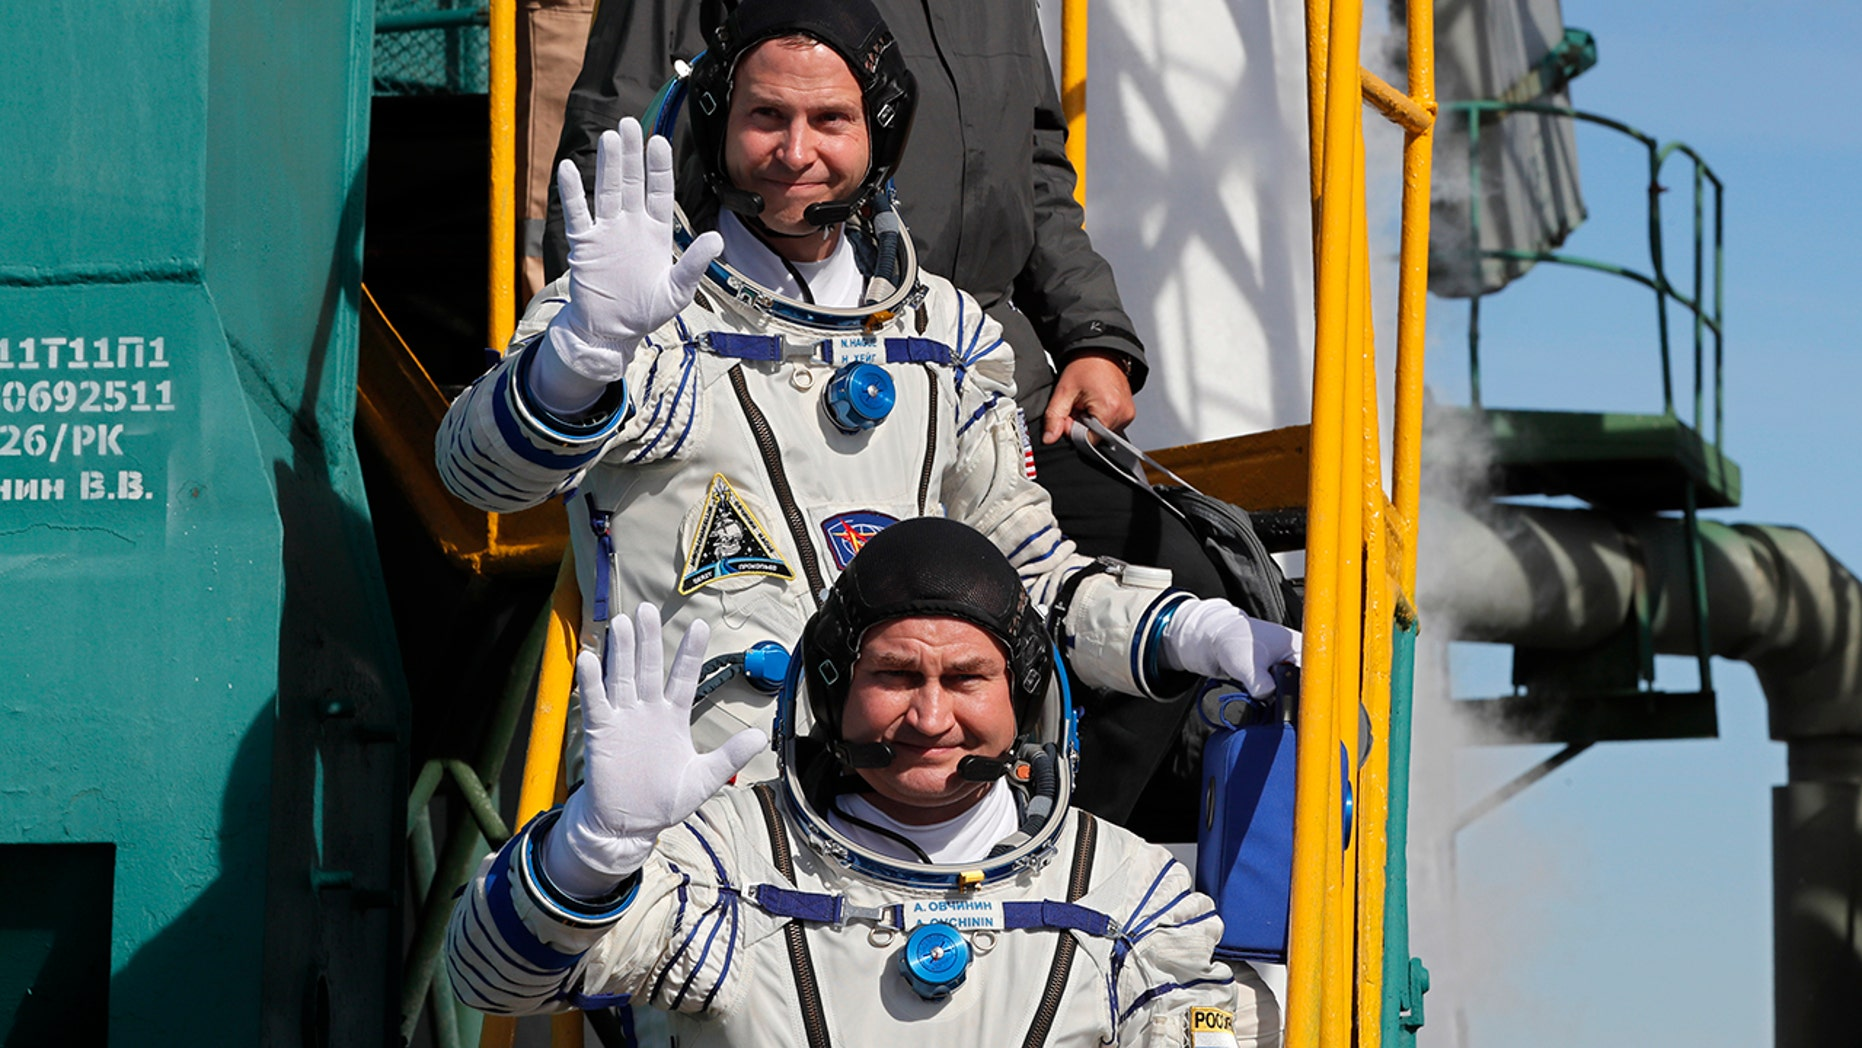 Astronauts arrive in Moscow after emergency landing in Kazakhstan